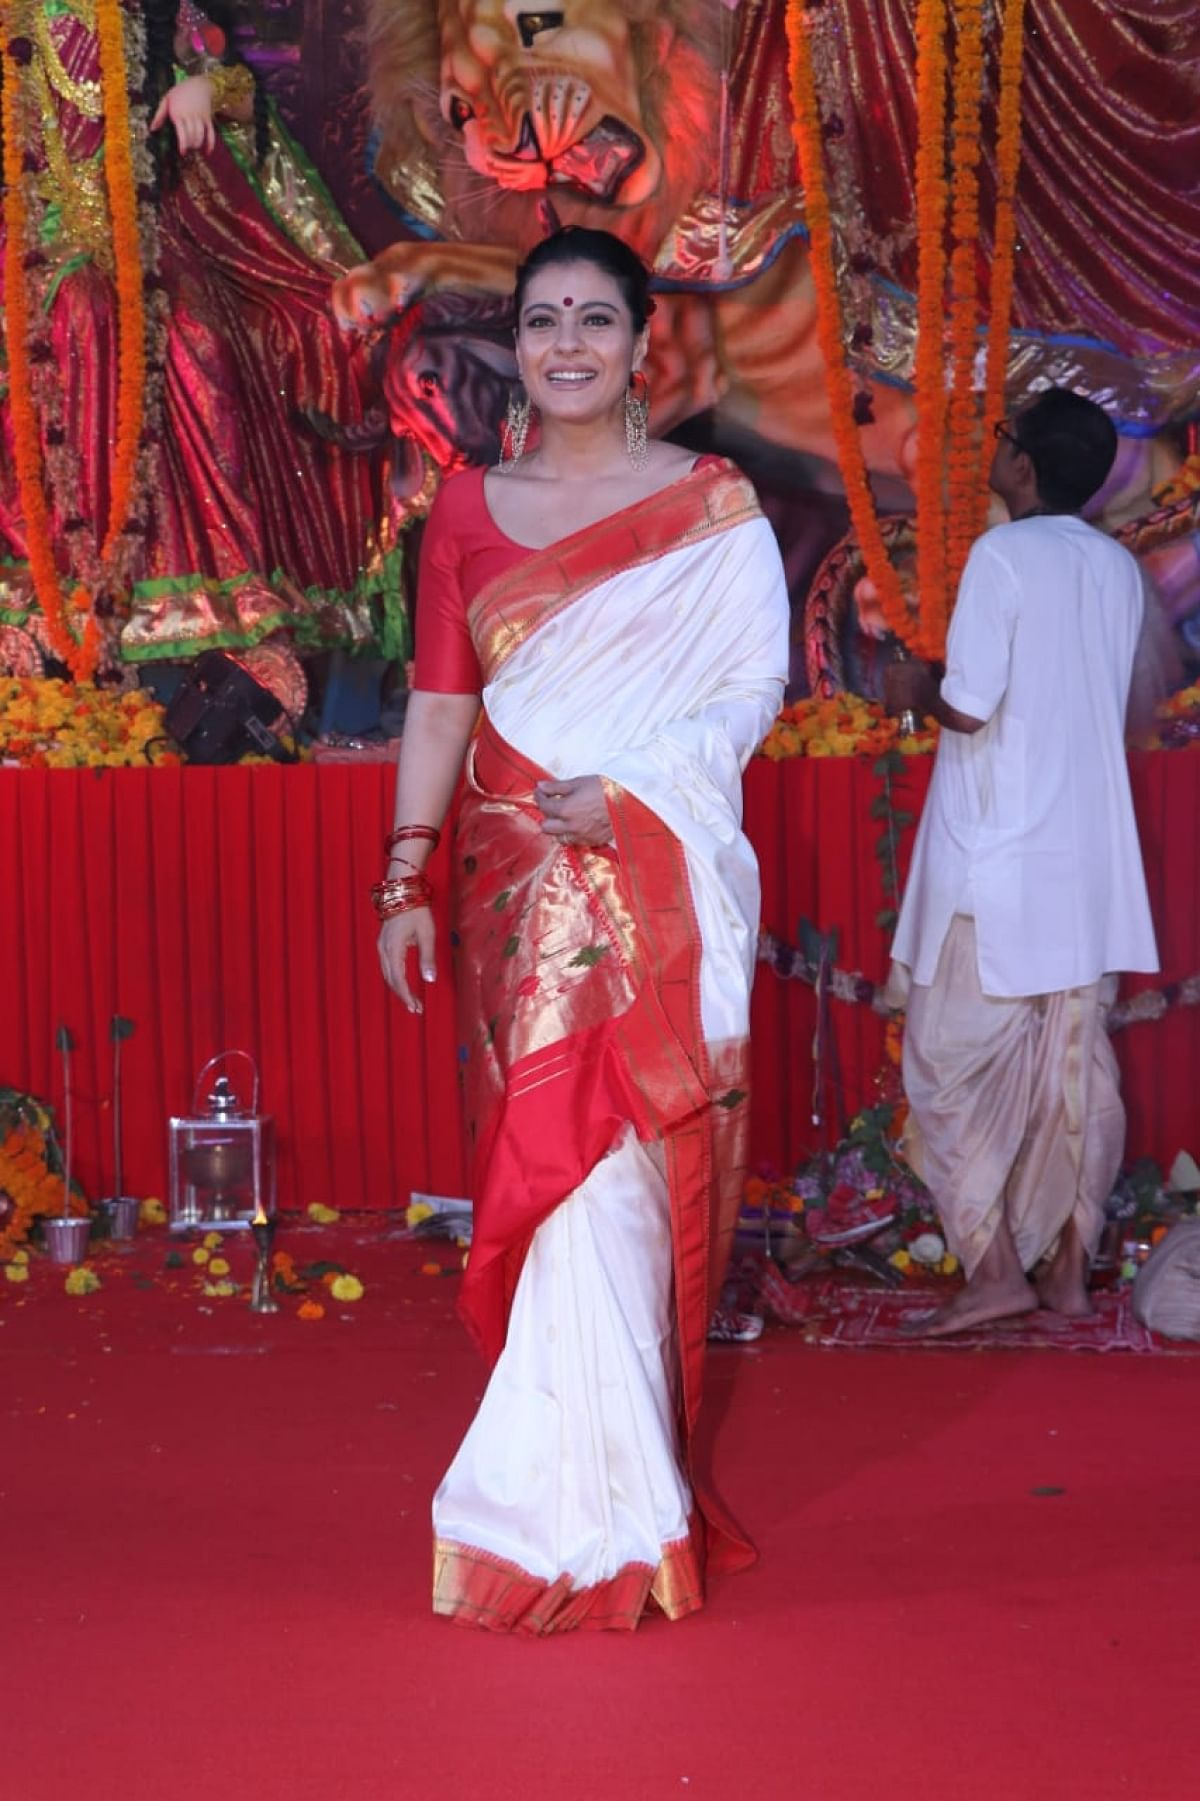 Kajol is one of the famous Bengali actress in Bollywood. She visits North Bombay Sarbojanik Durga Puja pandal in Mumbai every year. Kajol who is half-Bengali, is often seen distributing bhog as well.